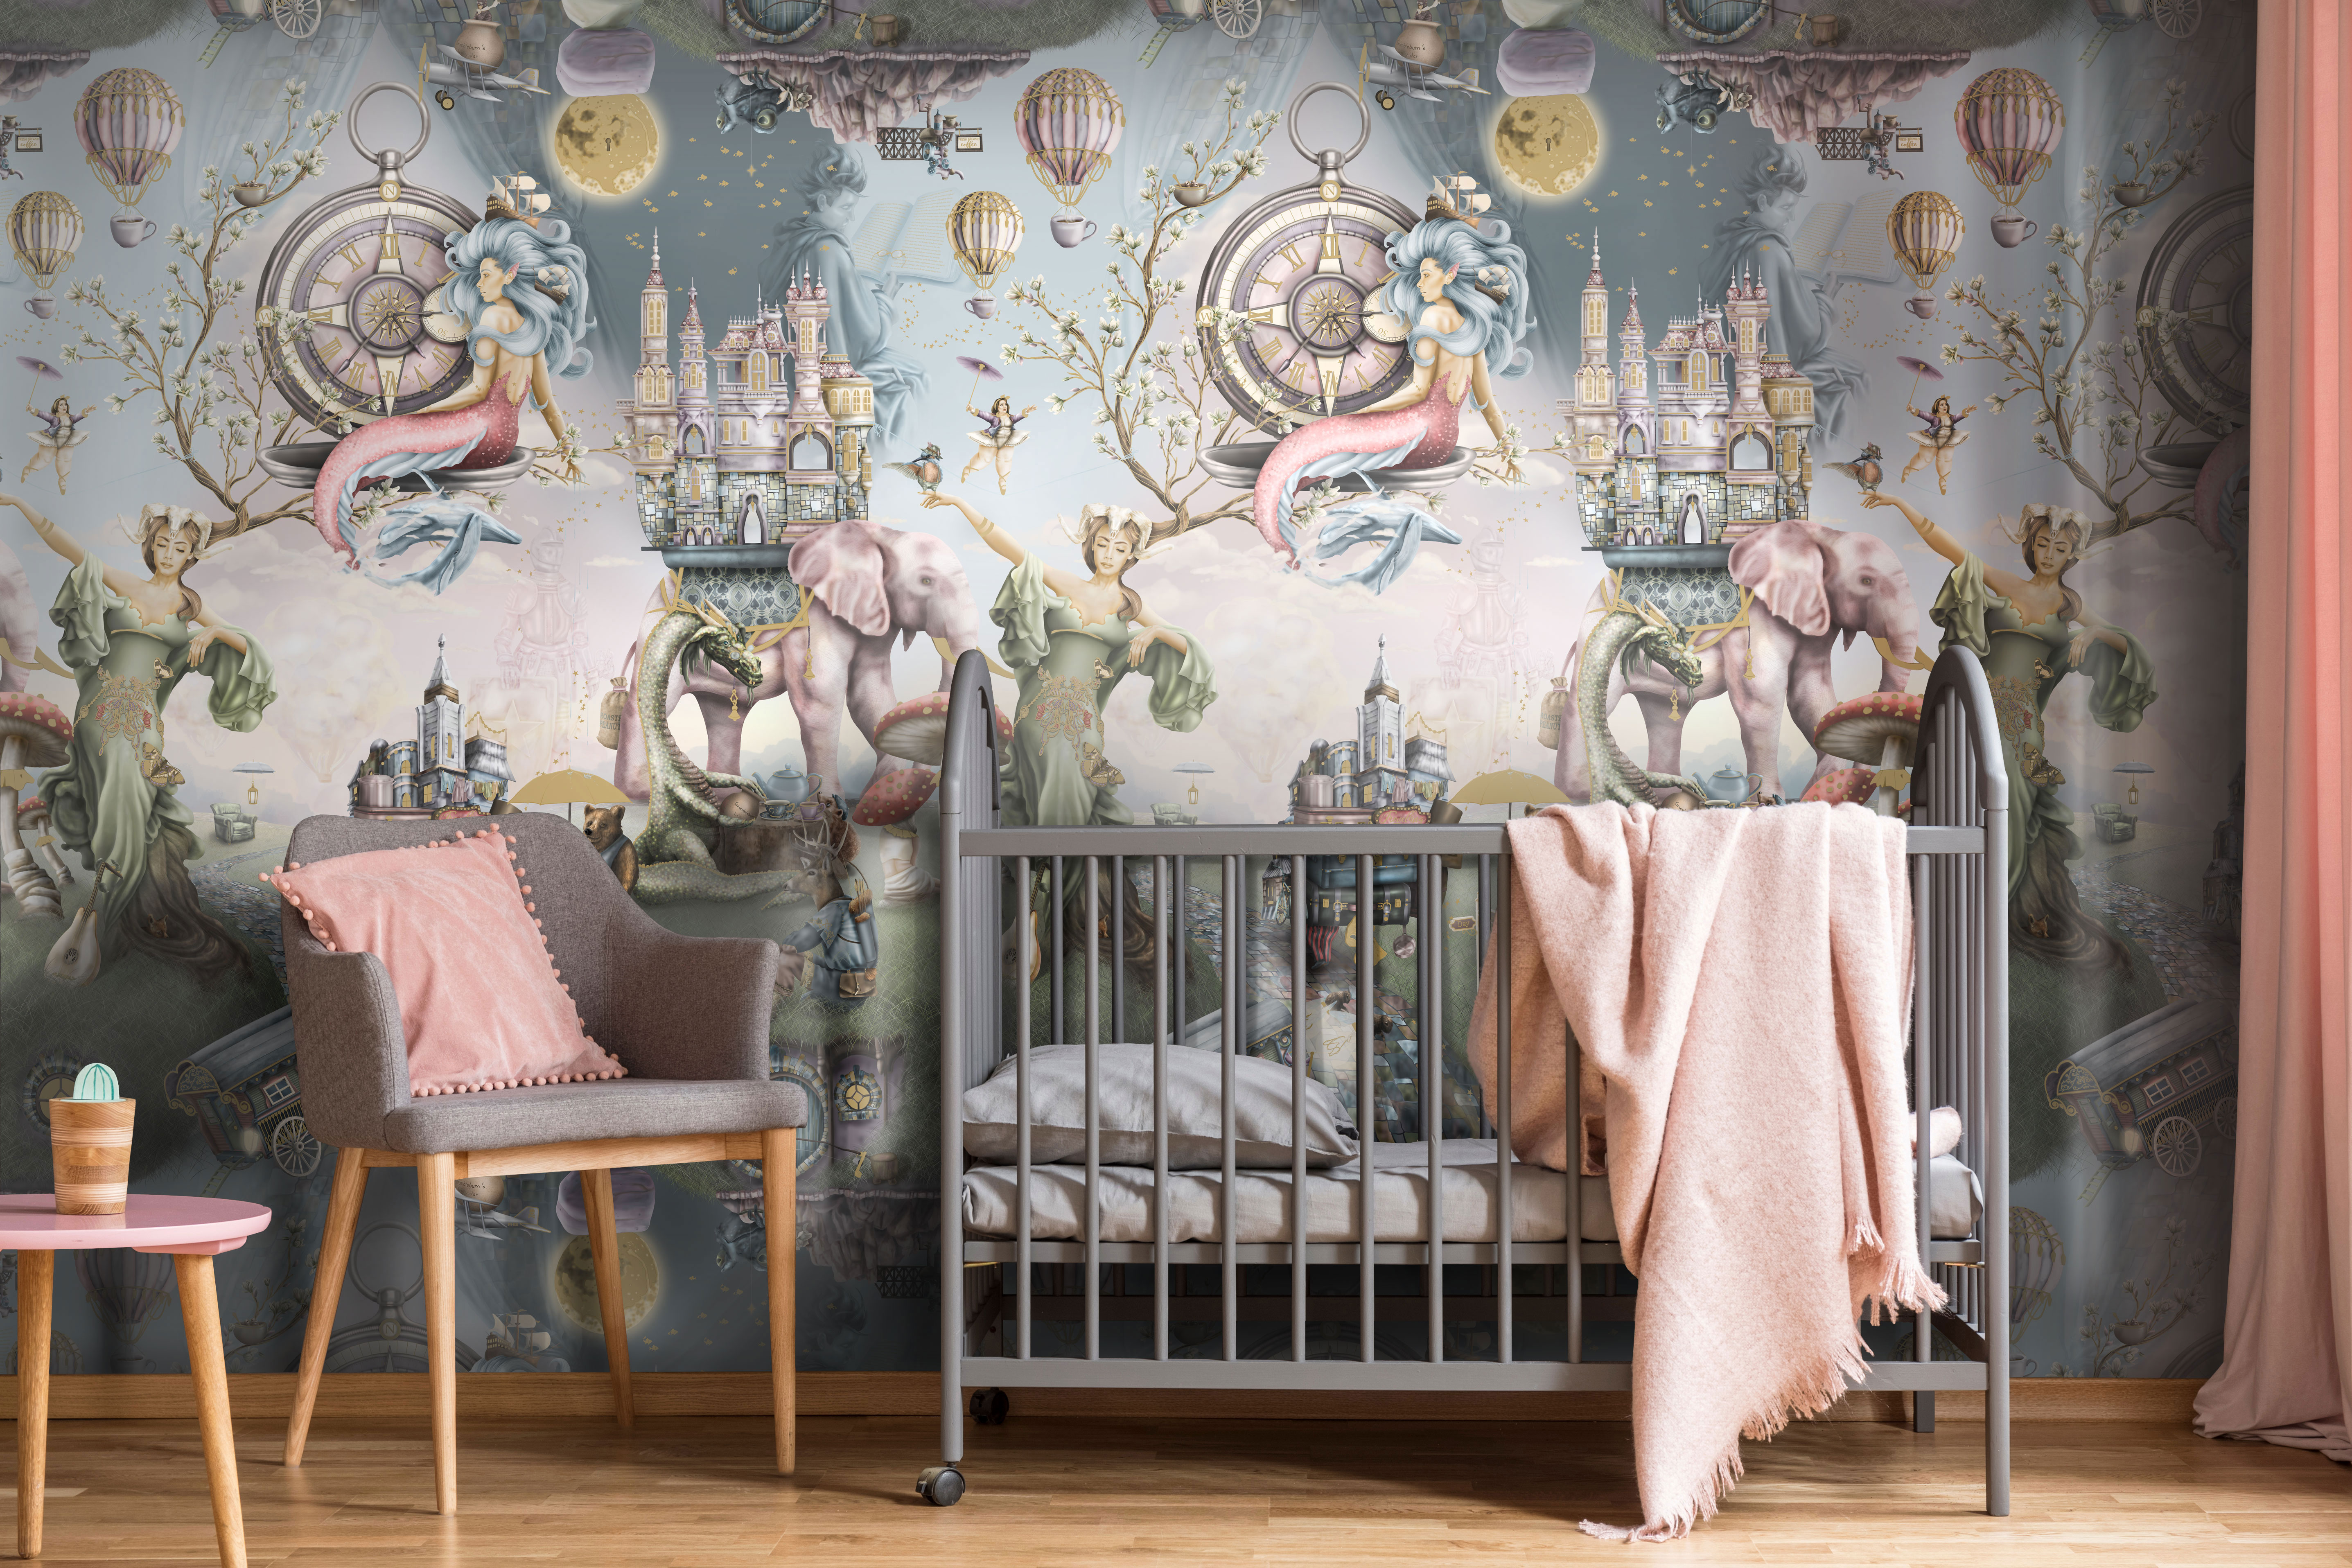 A Fairytale girls interior Wallpaper inspiration photo. Featuring grey and pink themed bedroom furniture, grey cot/crib and magical wallpaper!